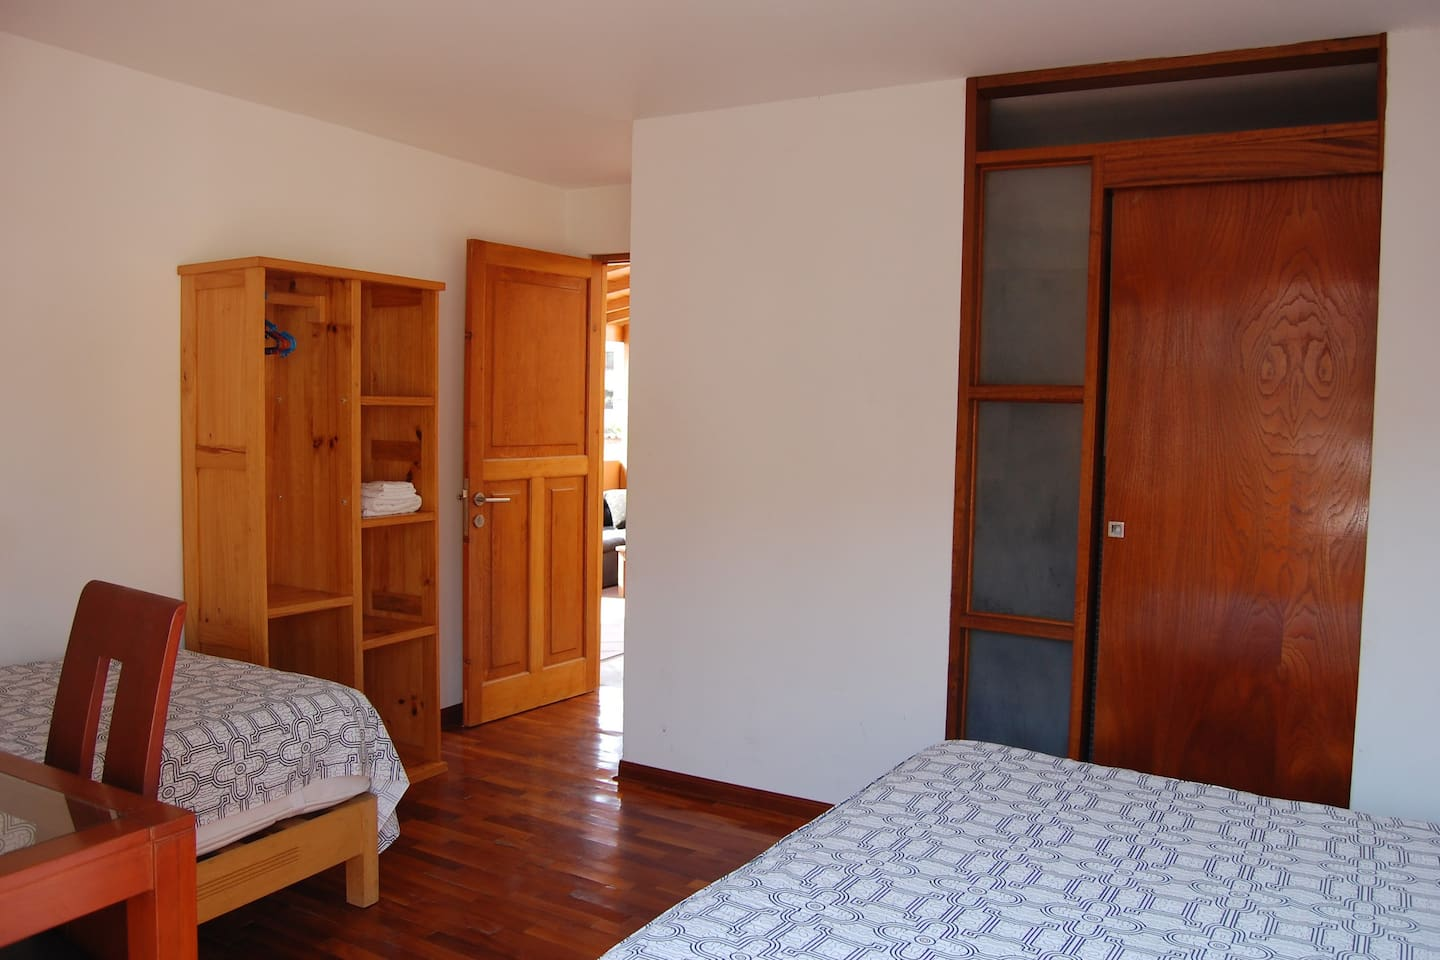 Room 2 - Queen bed and single bed.